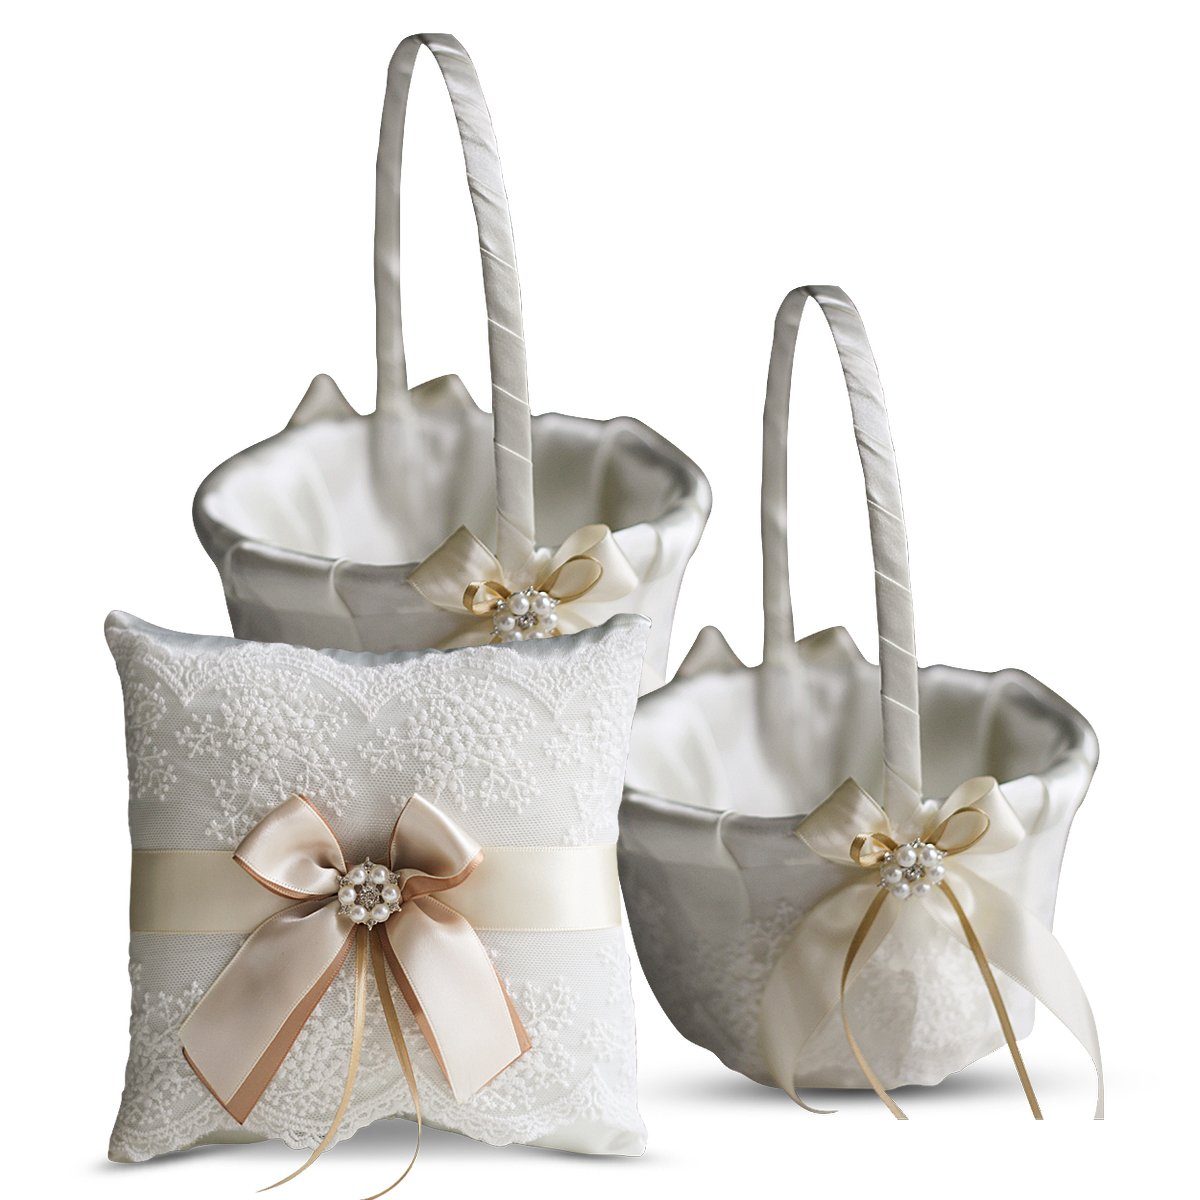 Alex Emotions Ivory Ring Bearer Pillow and Basket Set | Lace Collection | Flower Girl & Welcome Basket for Guest | Handmade Wedding Baskets & Pillows (Champagne) by Alex Emotions